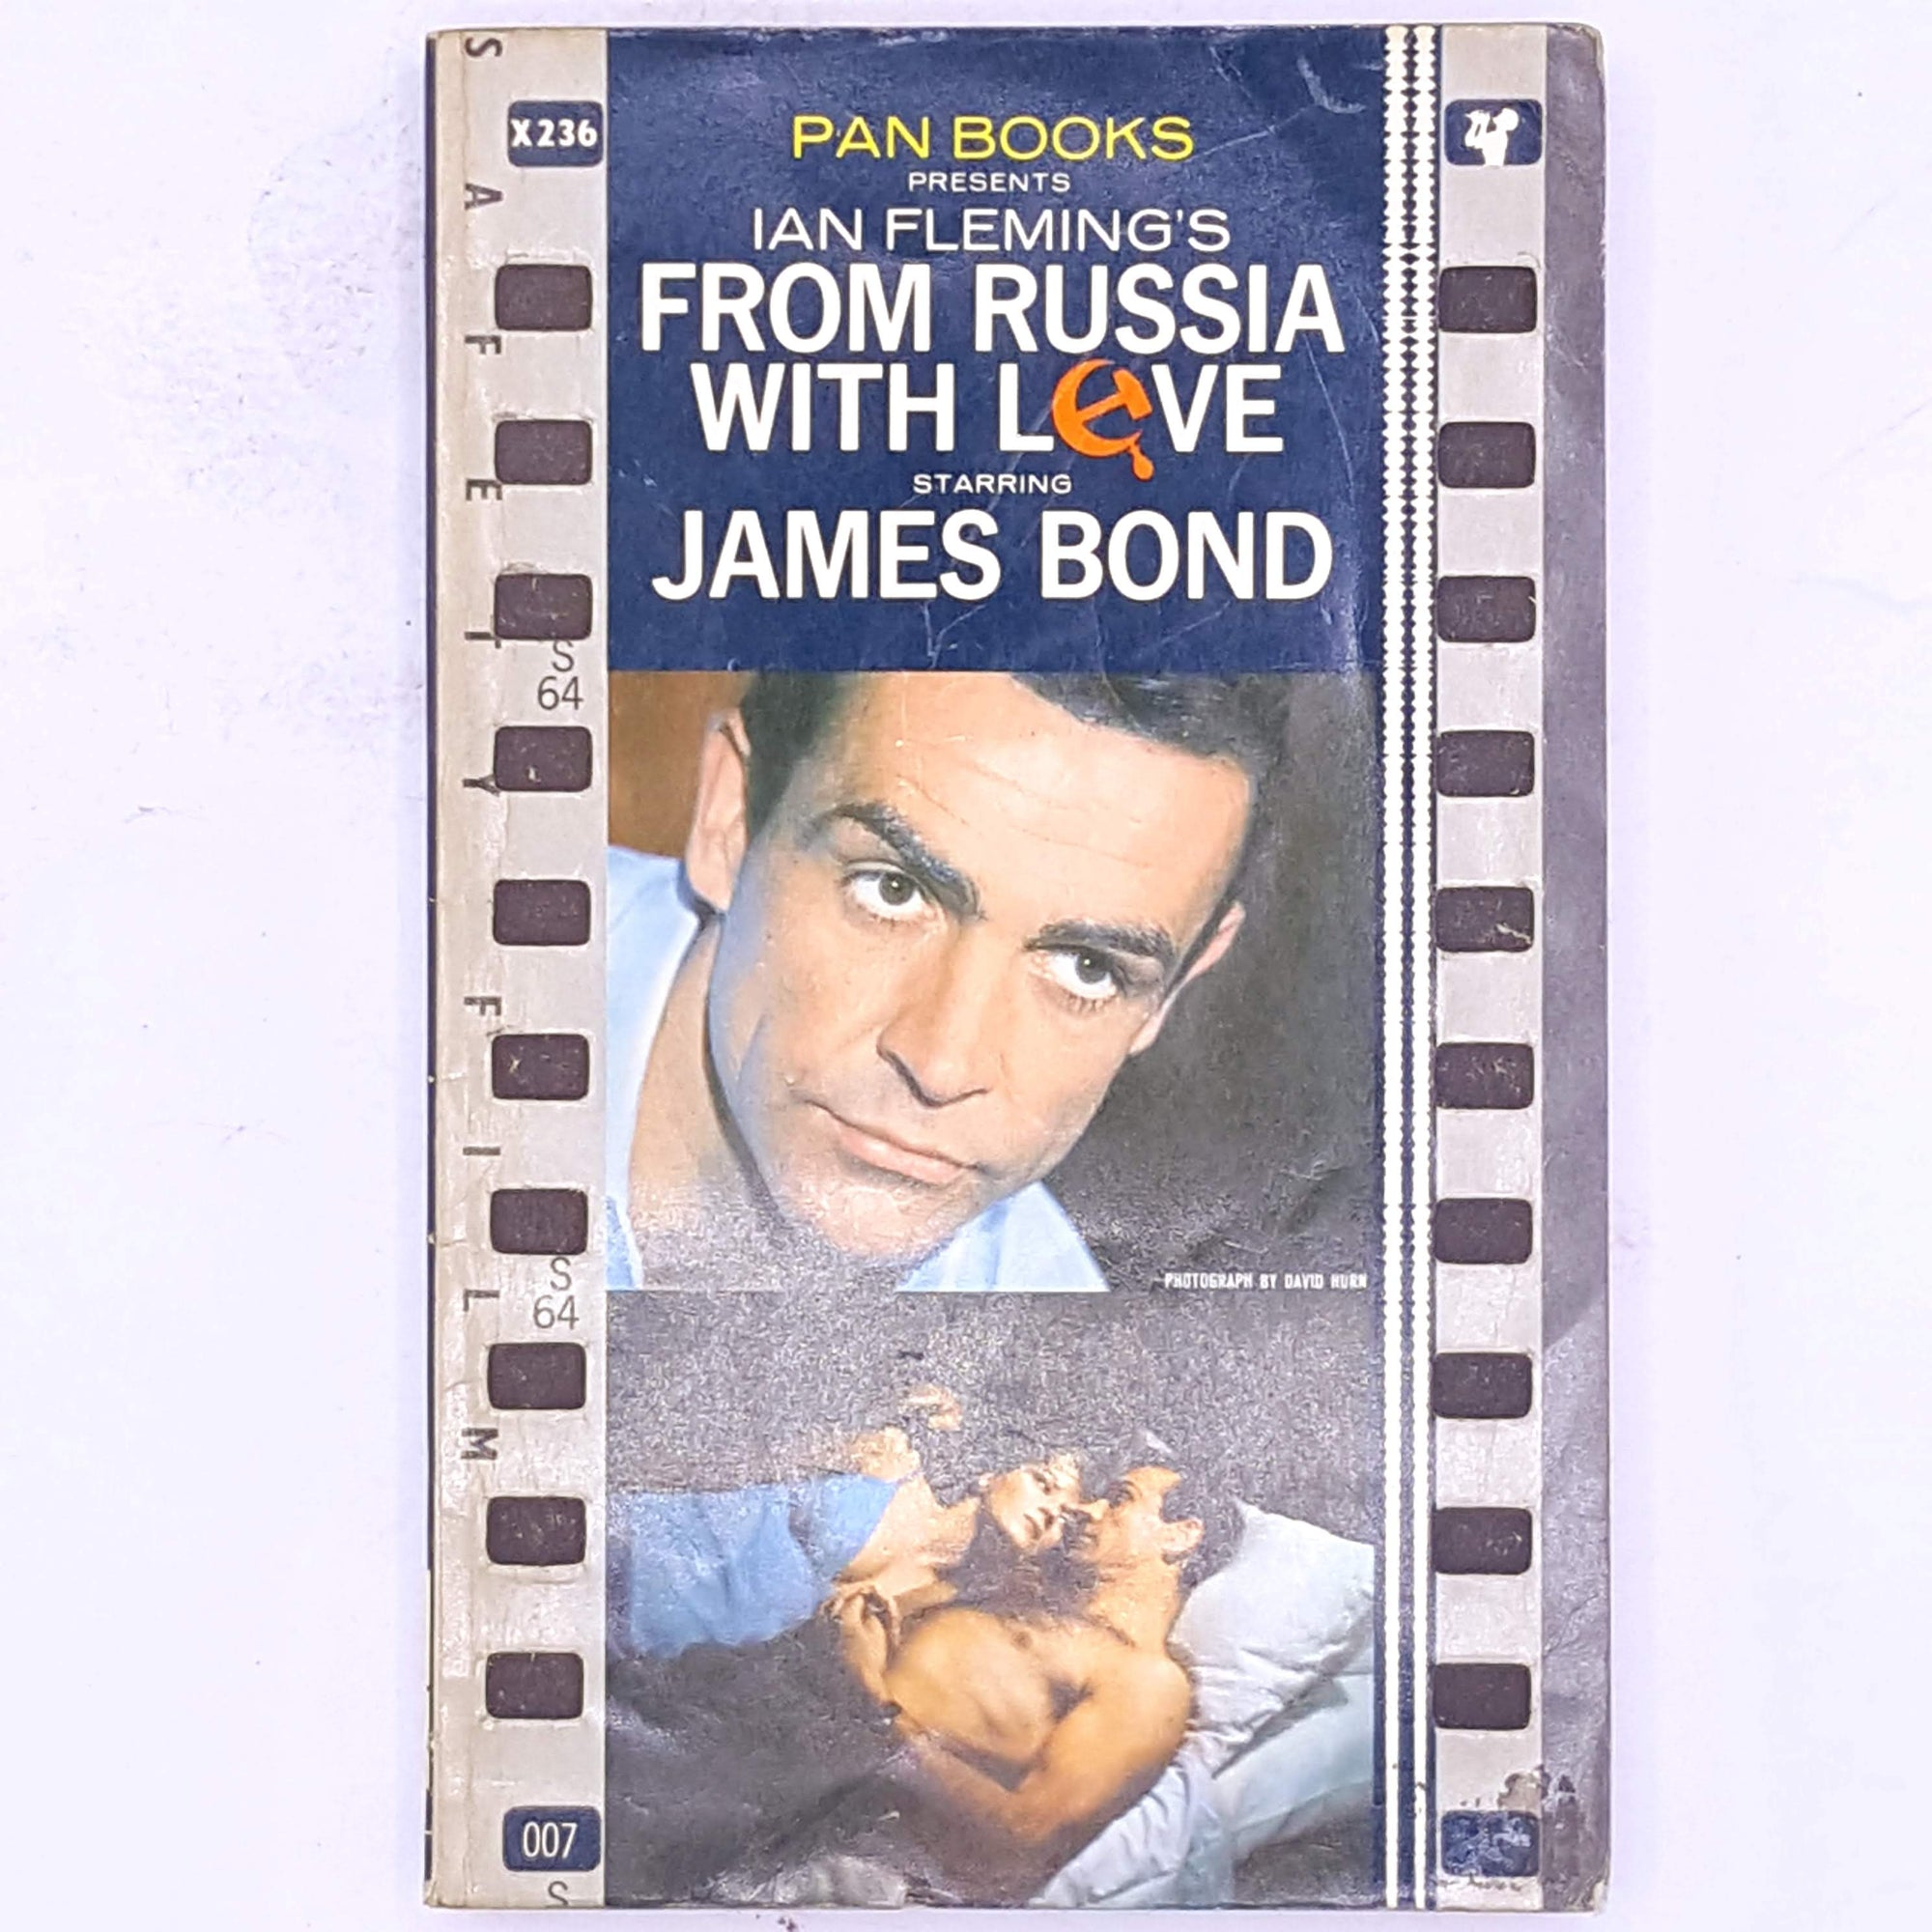 antique-decorative-ian-fleming-thrift-007-books-spy-crime-mystery-thriller-secret-service-classic-patterned-vintage-james-bond-British-secret-agent-country-house-library-old-from-russia-with-love-